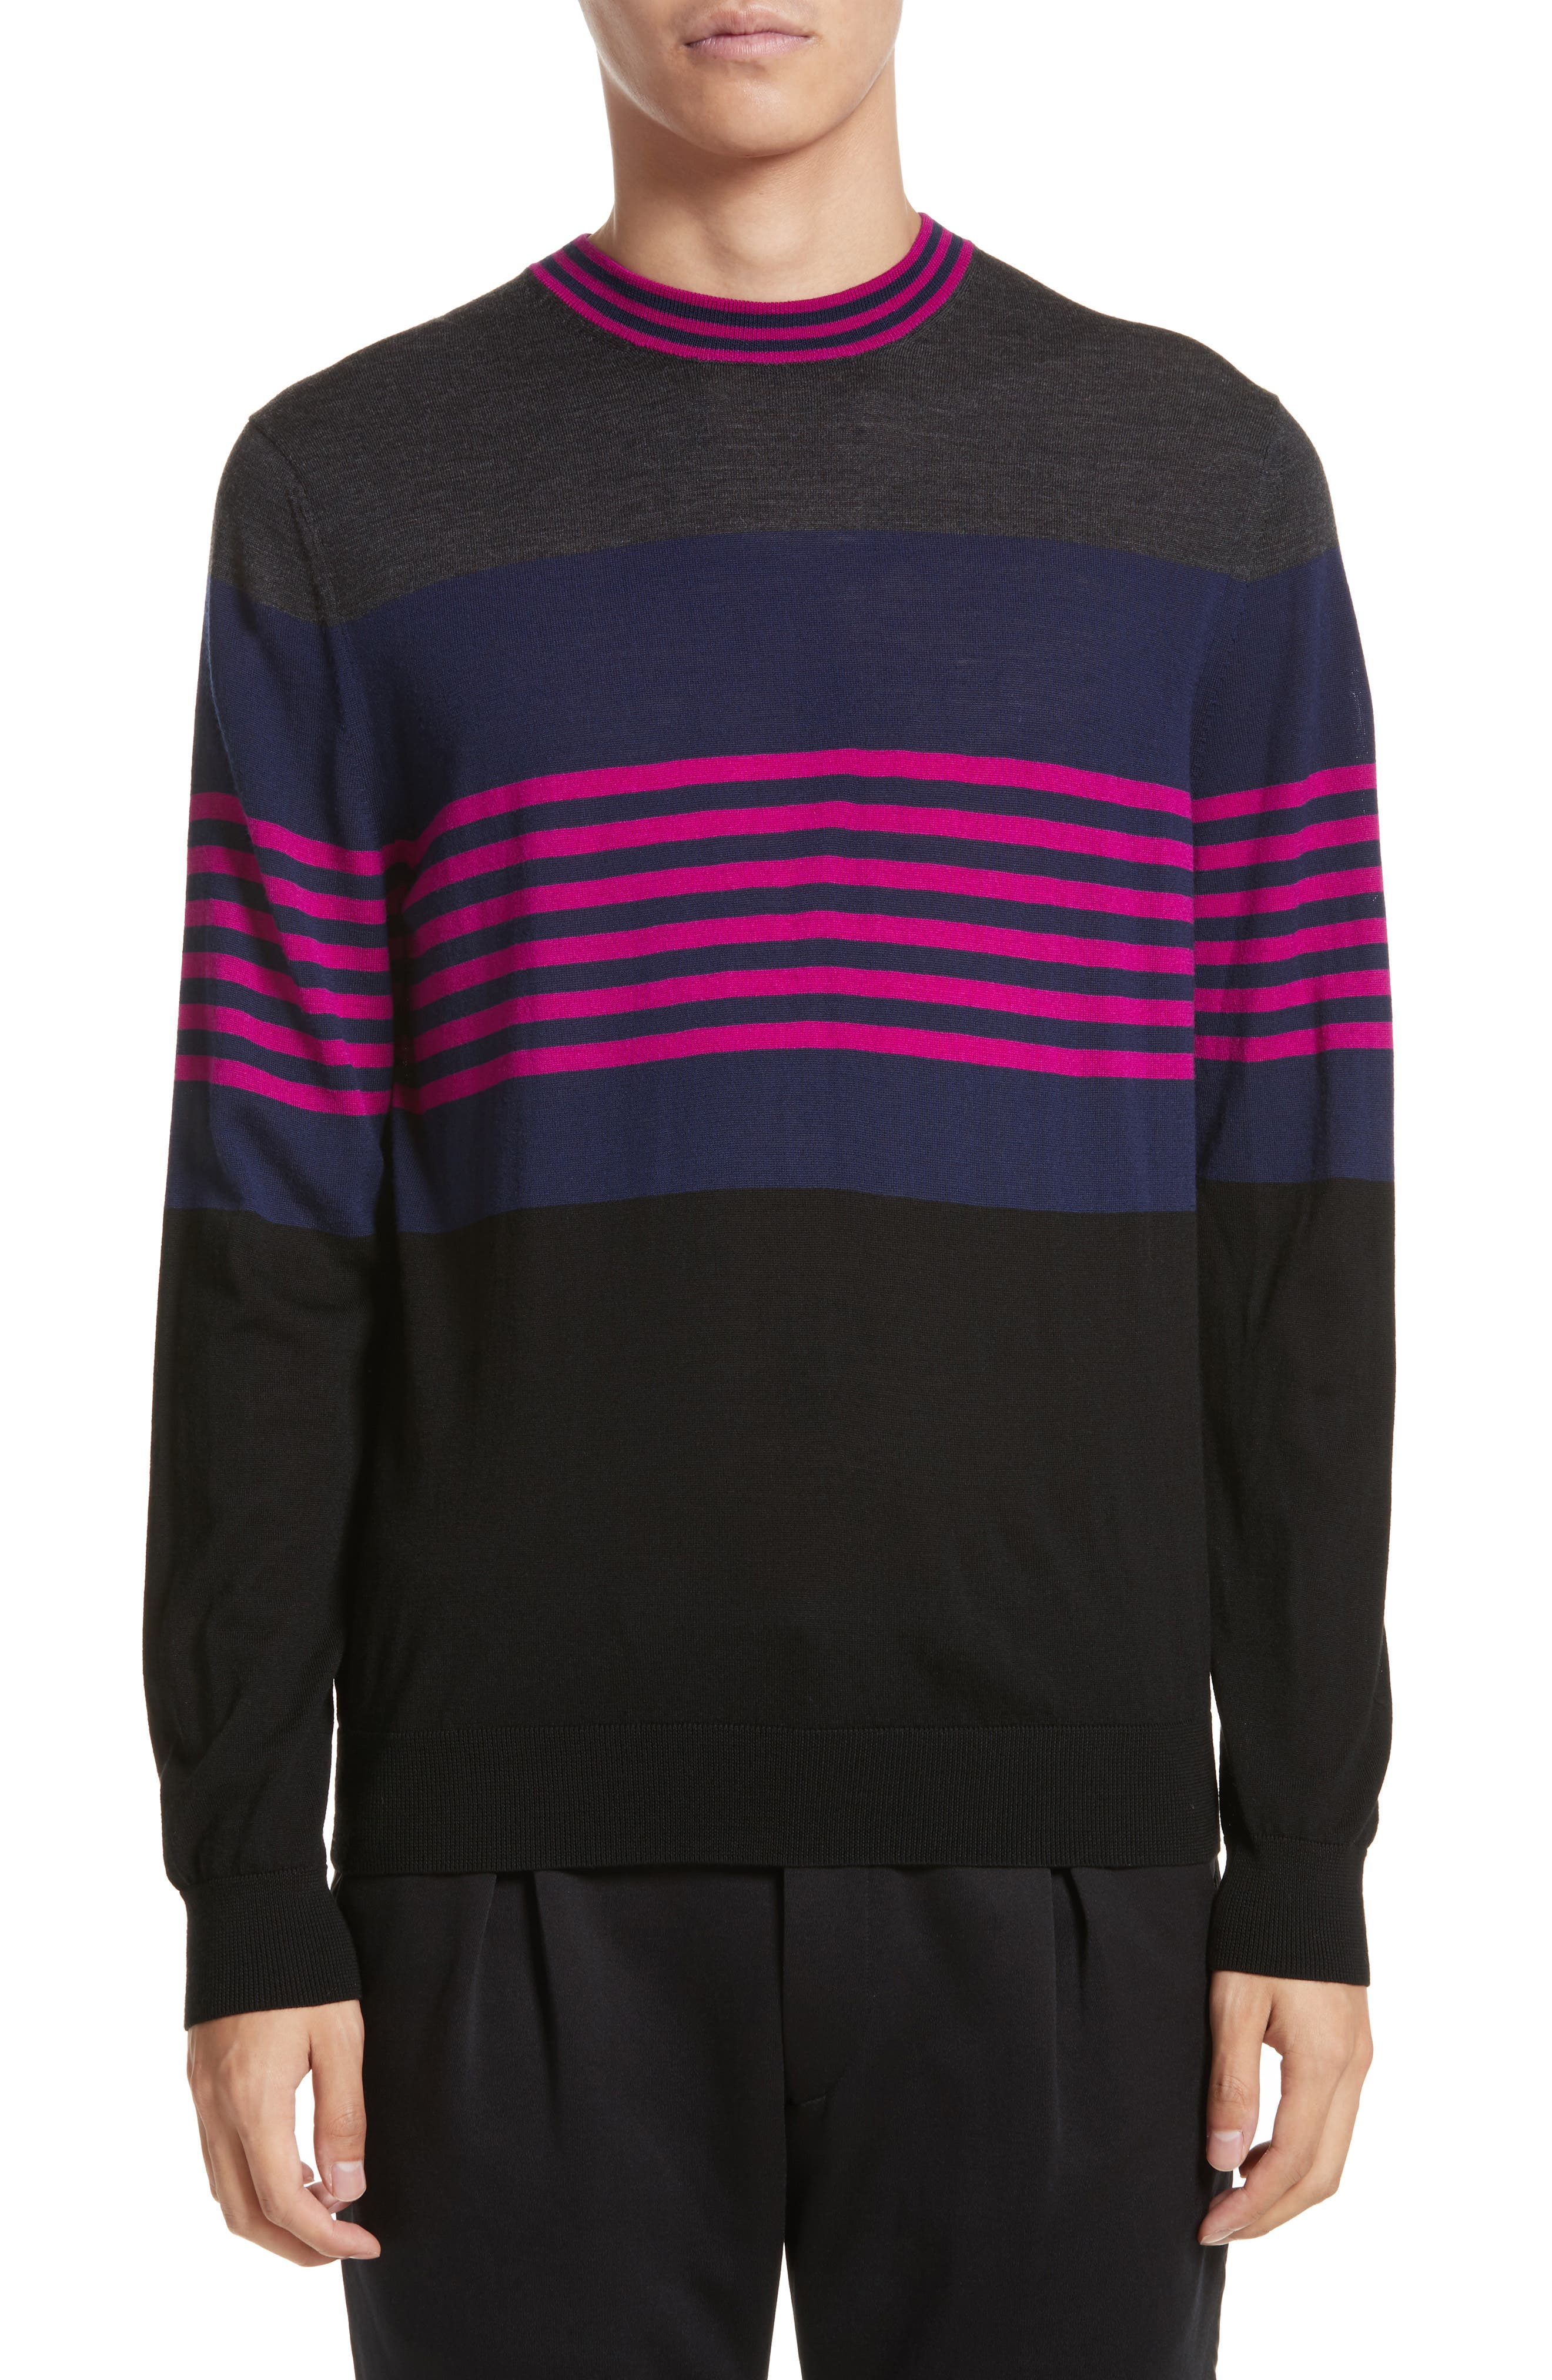 Stripe Merino Wool Crewneck Sweater,                             Main thumbnail 1, color,                             Grey Multi